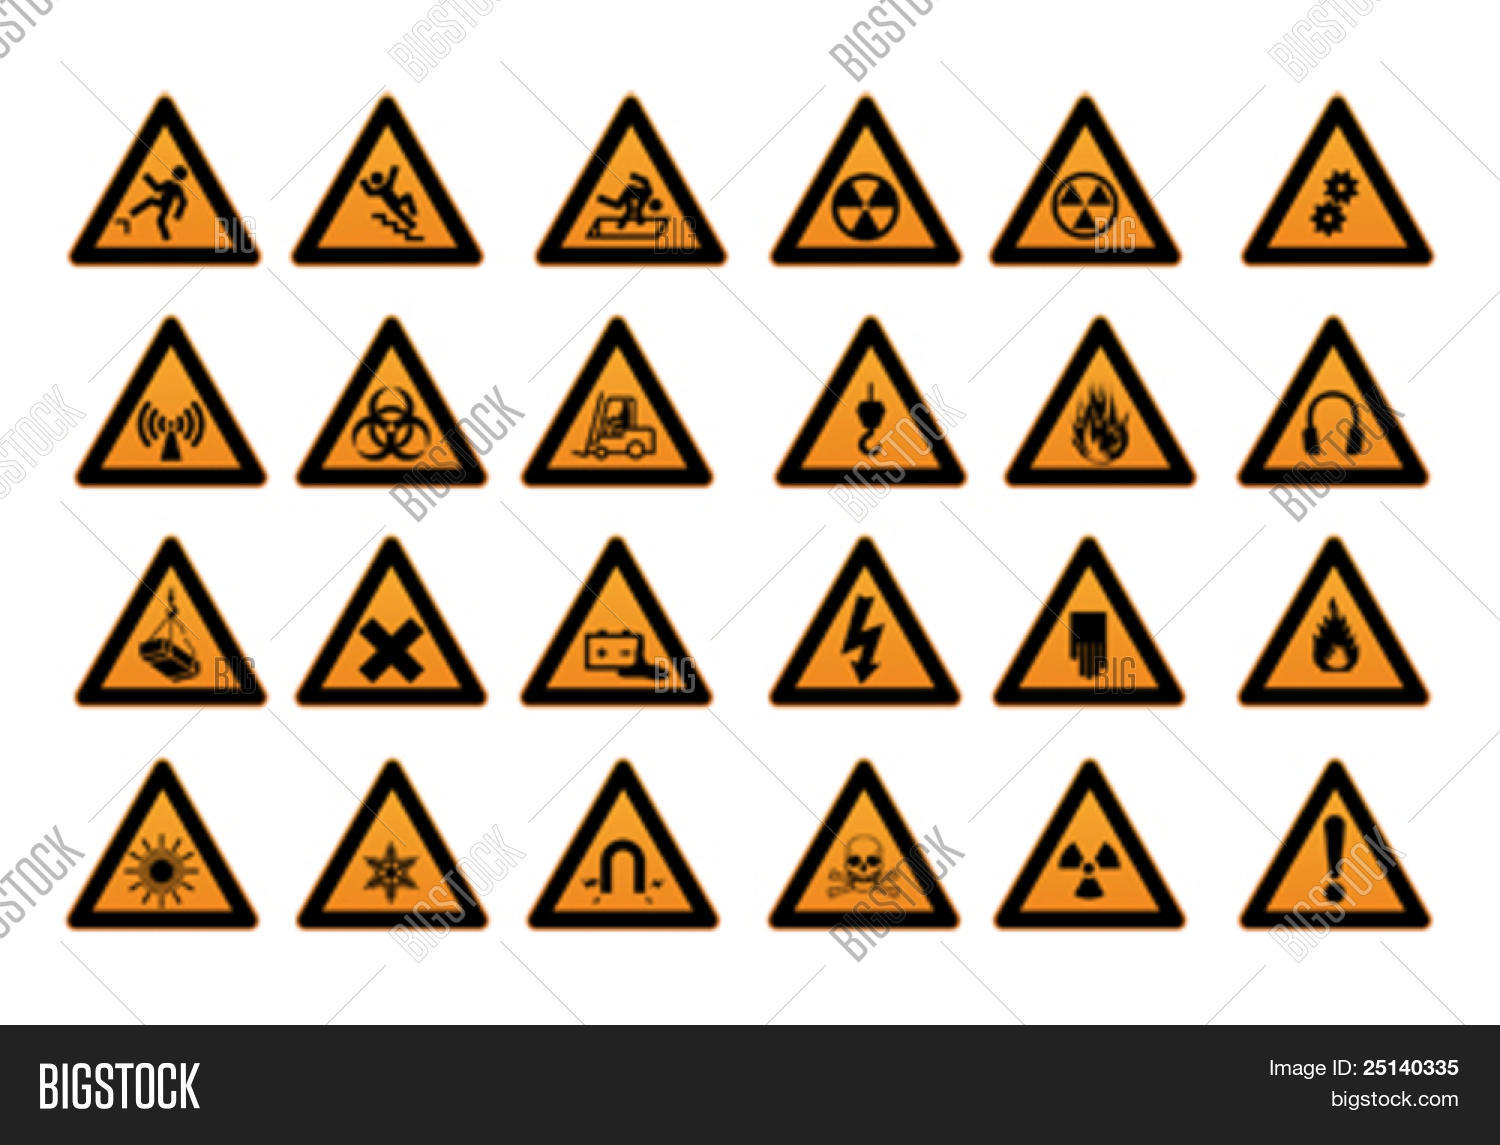 Work Safety Signs Symbols Vector Amp Photo